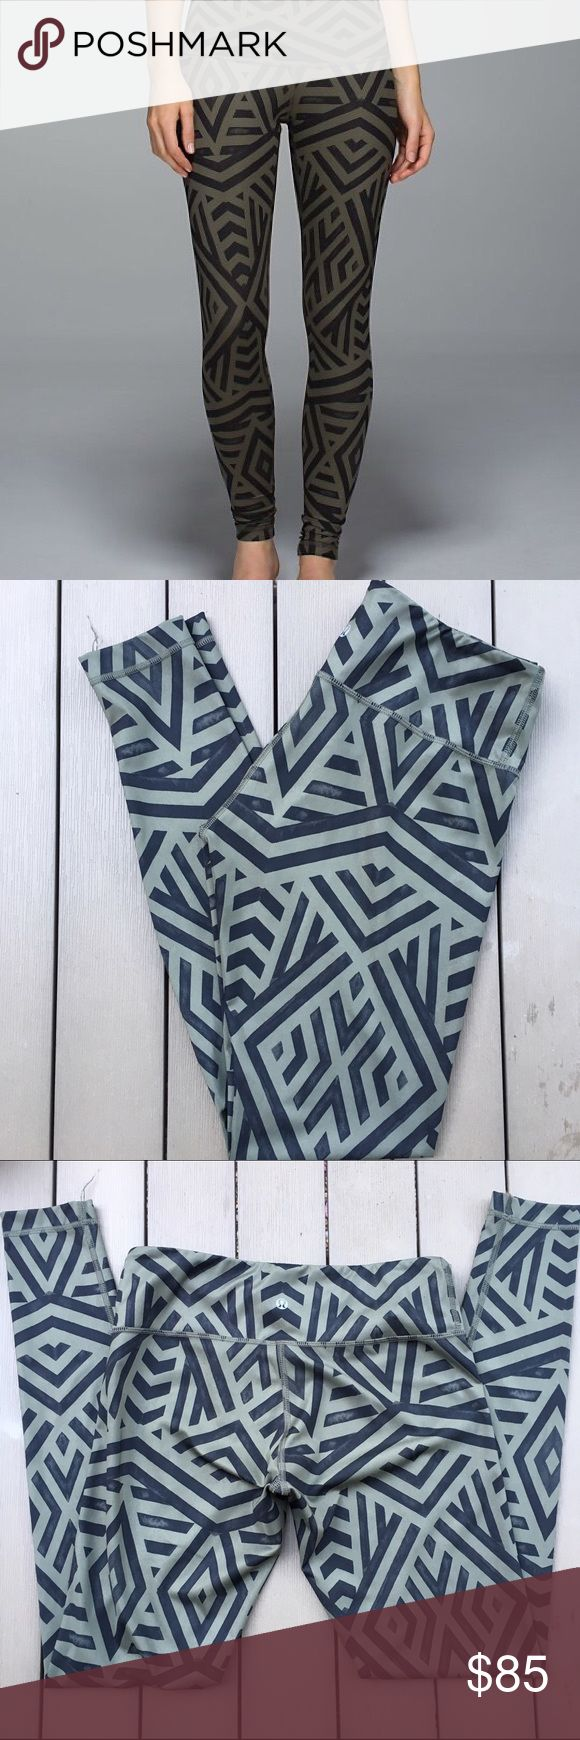 Lululemon Olive Green Chevron Wunder Under Pants Rare and hard to find! Excellent condition. Luxtreme fabric. Size 8. Comes with complimentary Lululemon bag as well! lululemon athletica Pants Leggings